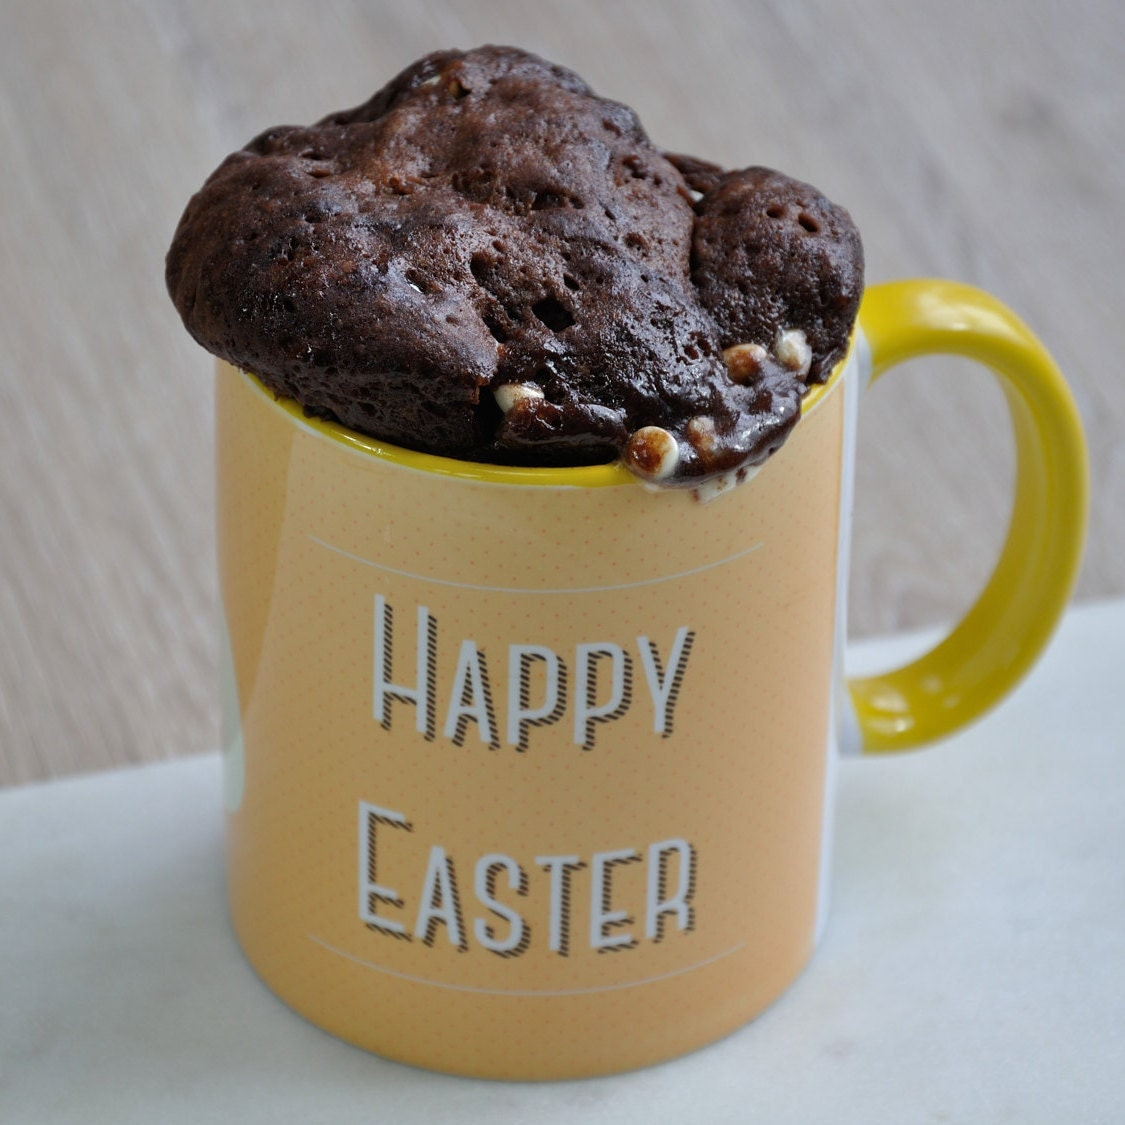 Easter bunny easter gifts easter egg happy easter easter gift easter bunny easter gifts easter egg happy easter easter gift easter for him easter for her easter cake easter mug easter choc negle Gallery